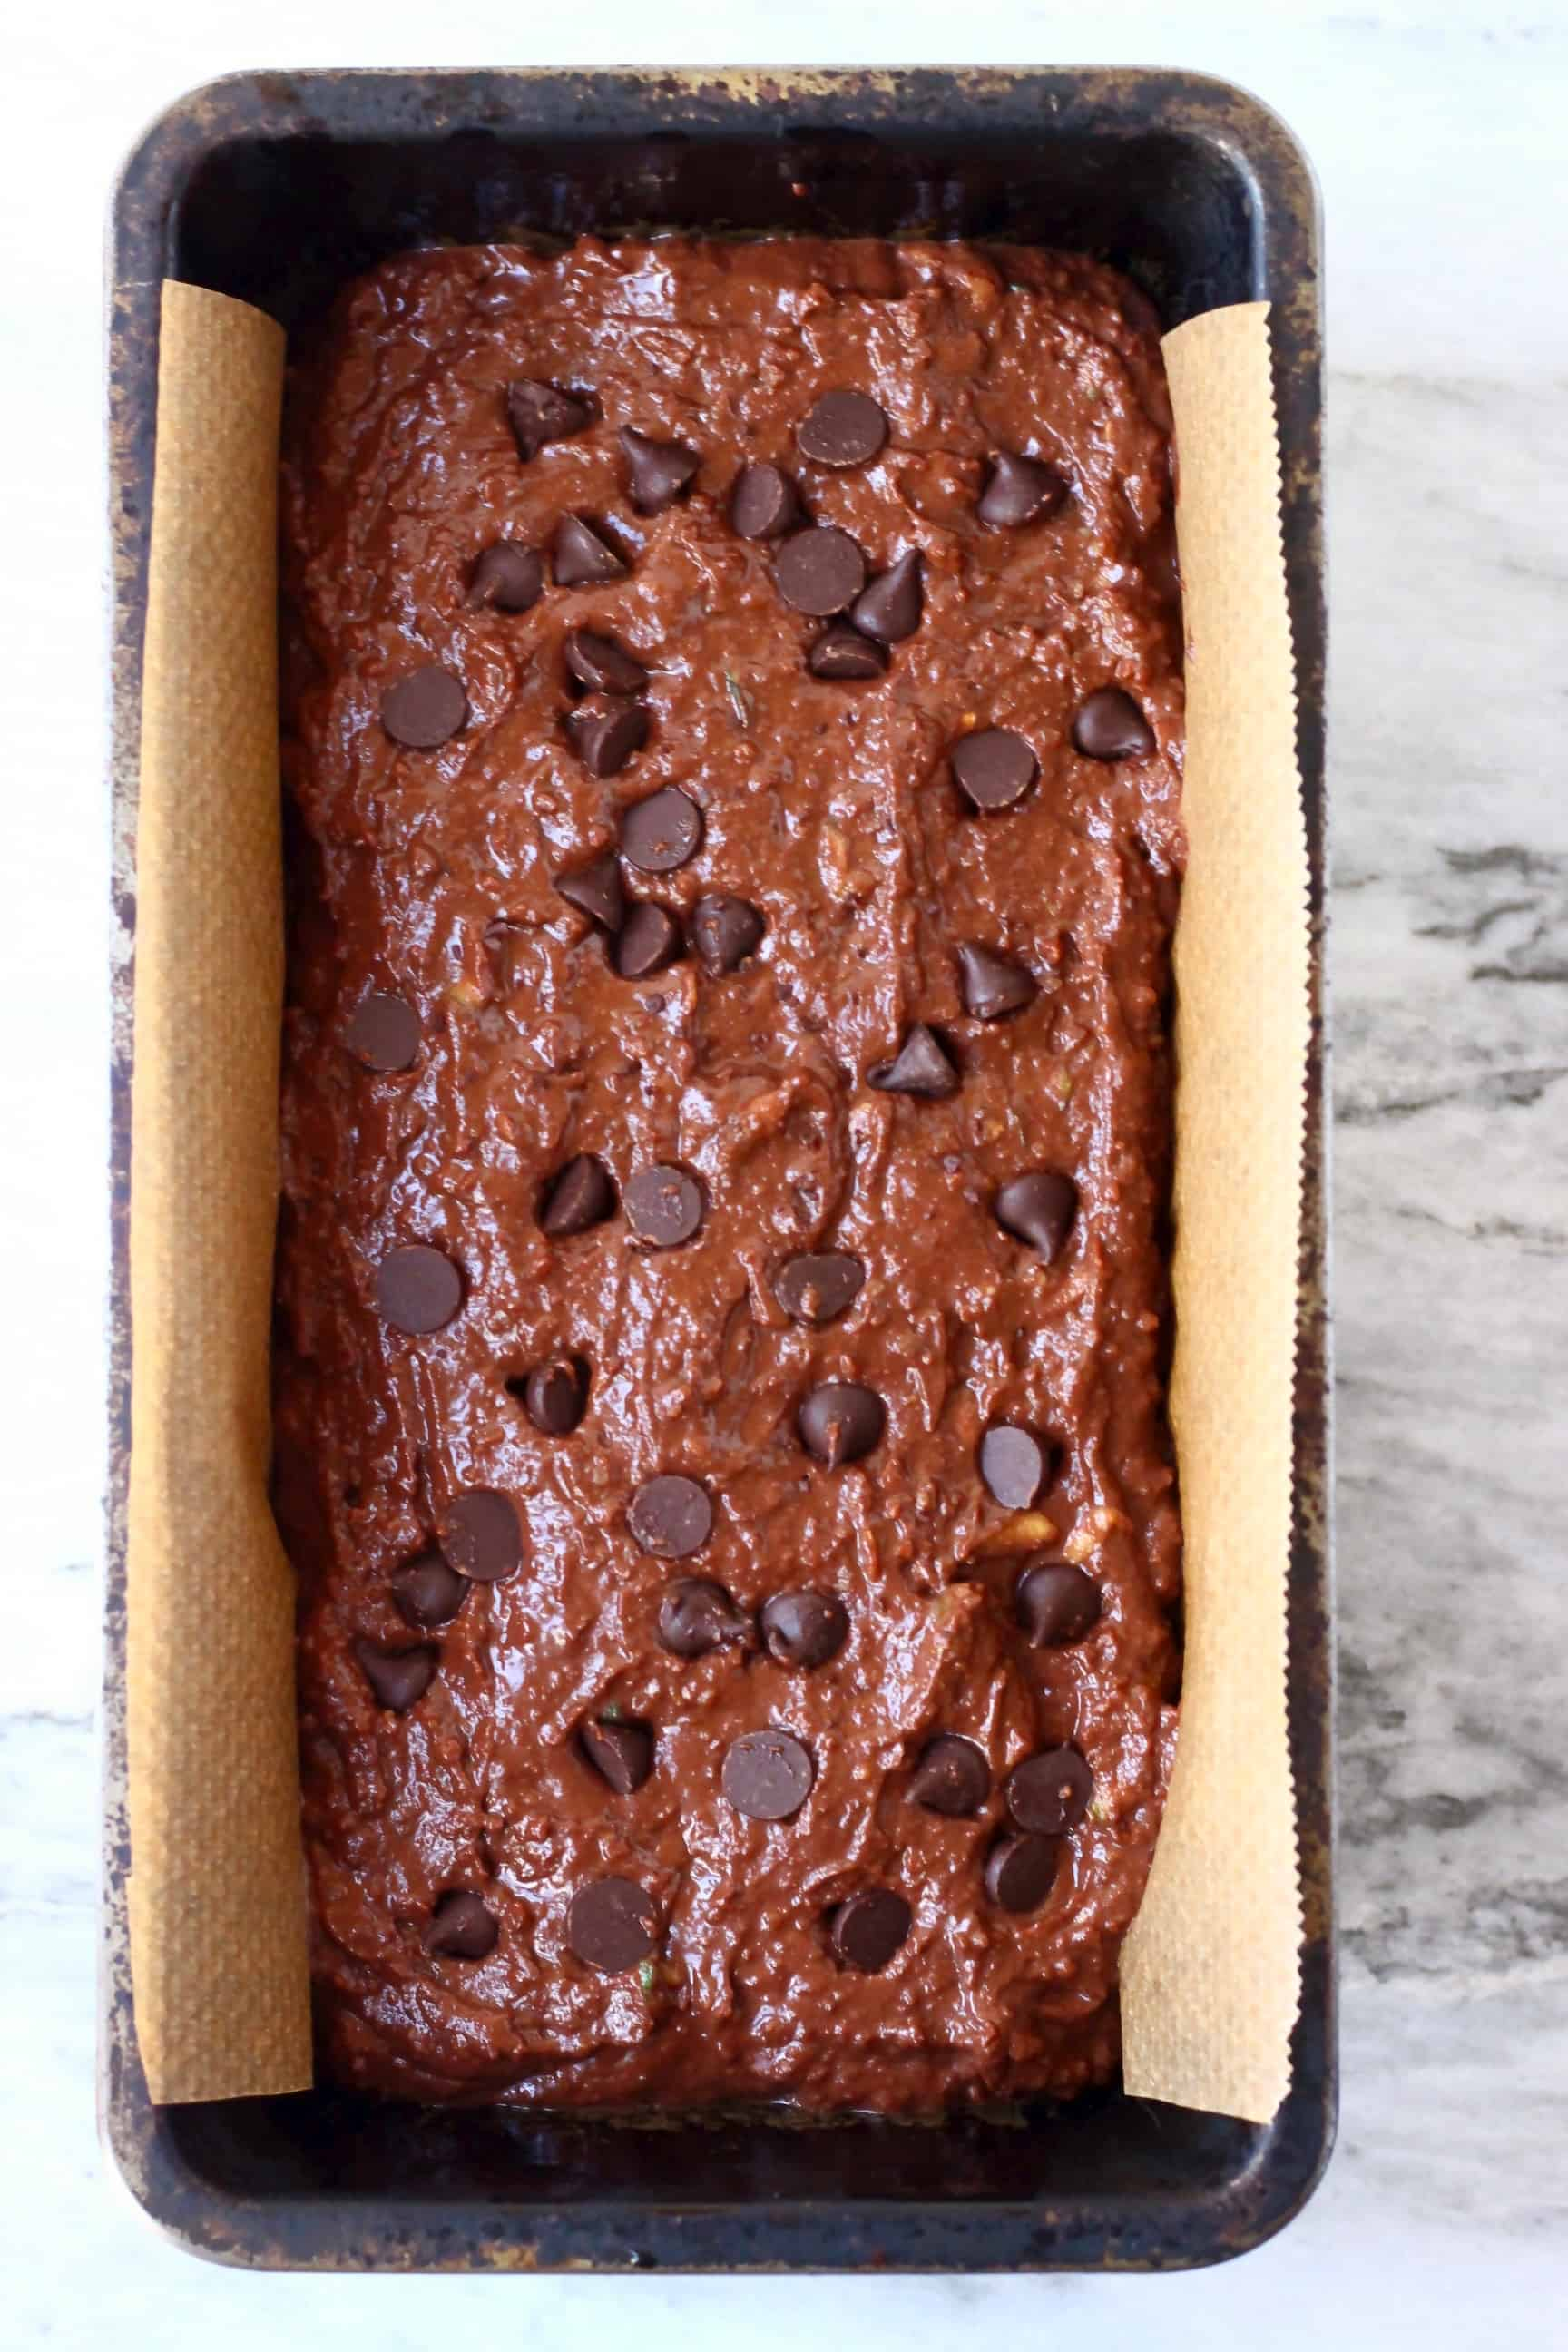 Raw gluten-free vegan chocolate zucchini bread batter studded with chocolate chips in a loaf tin lined with baking paper